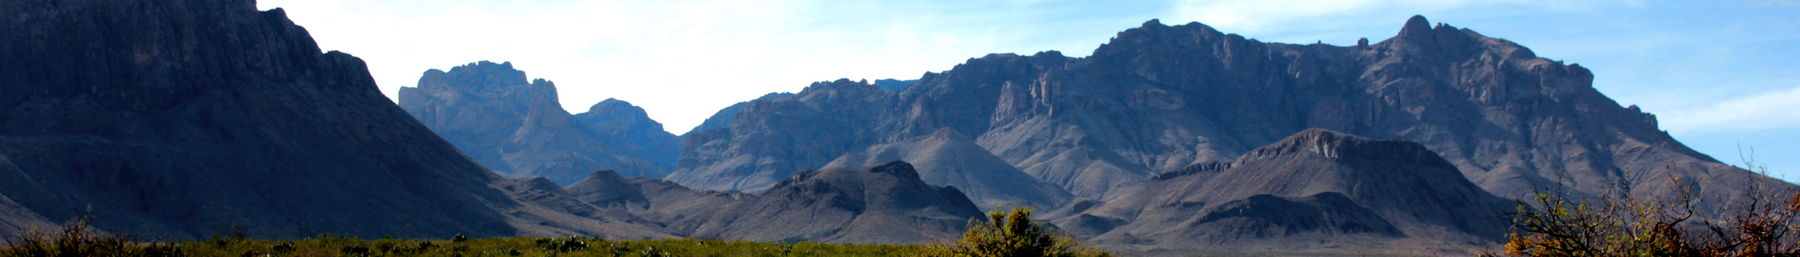 Big Bend National Park-banner.JPG